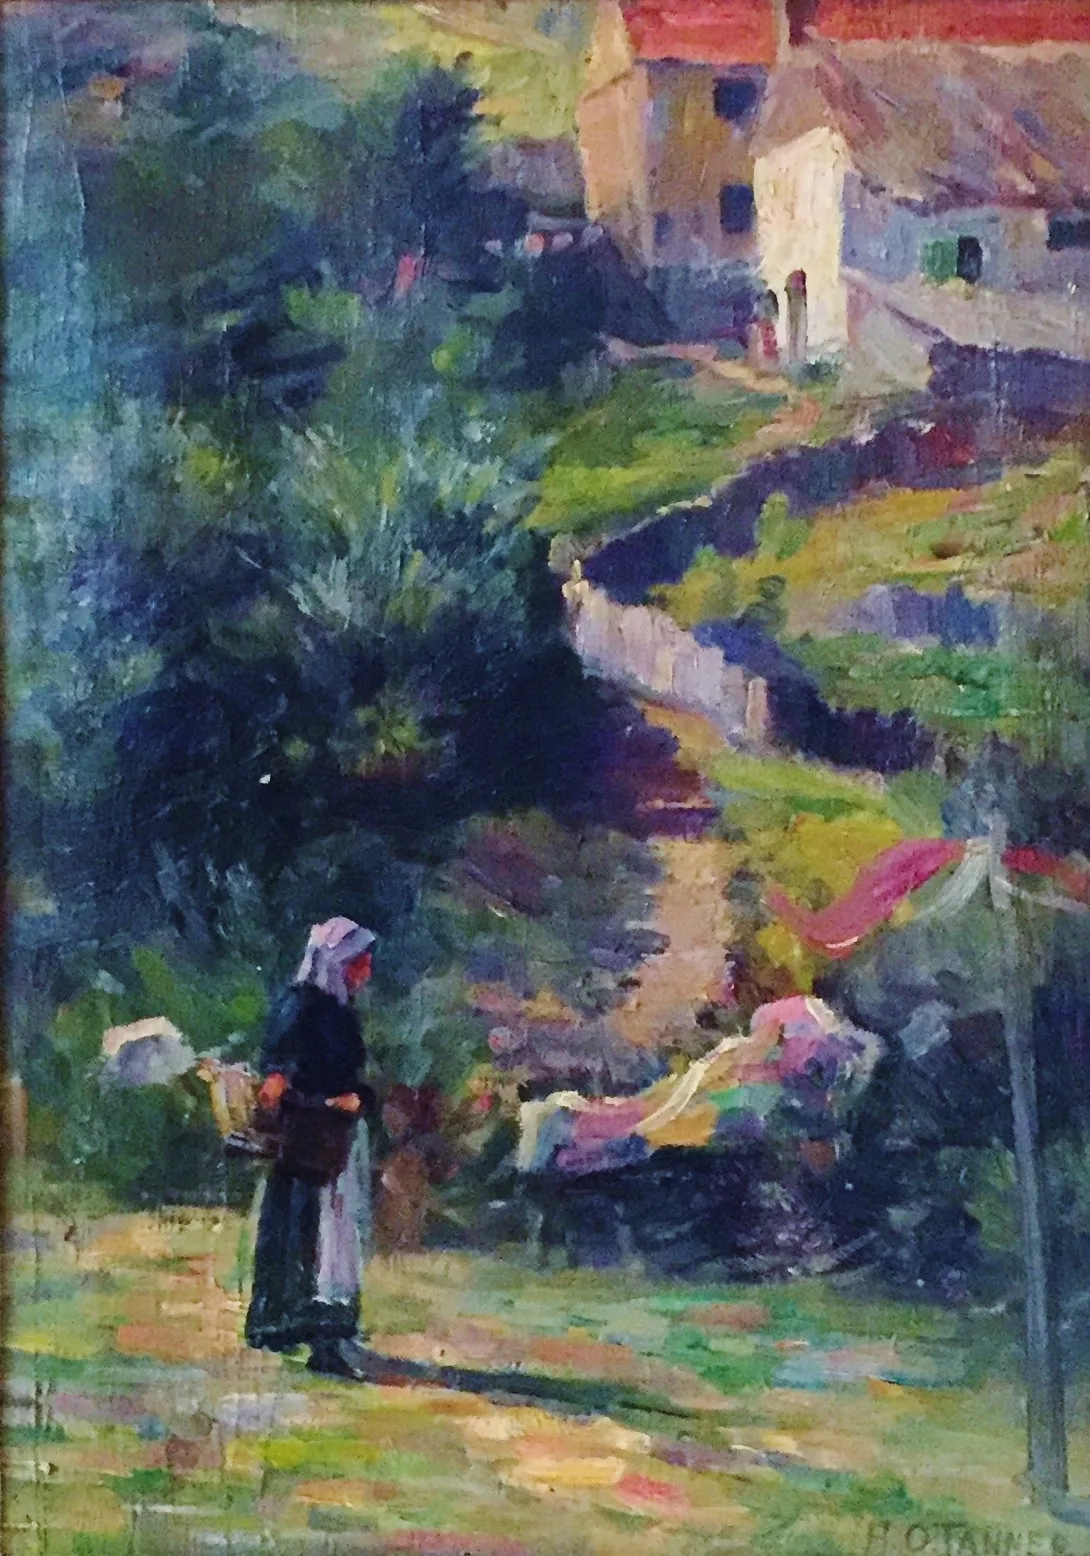 Landscape with female figure